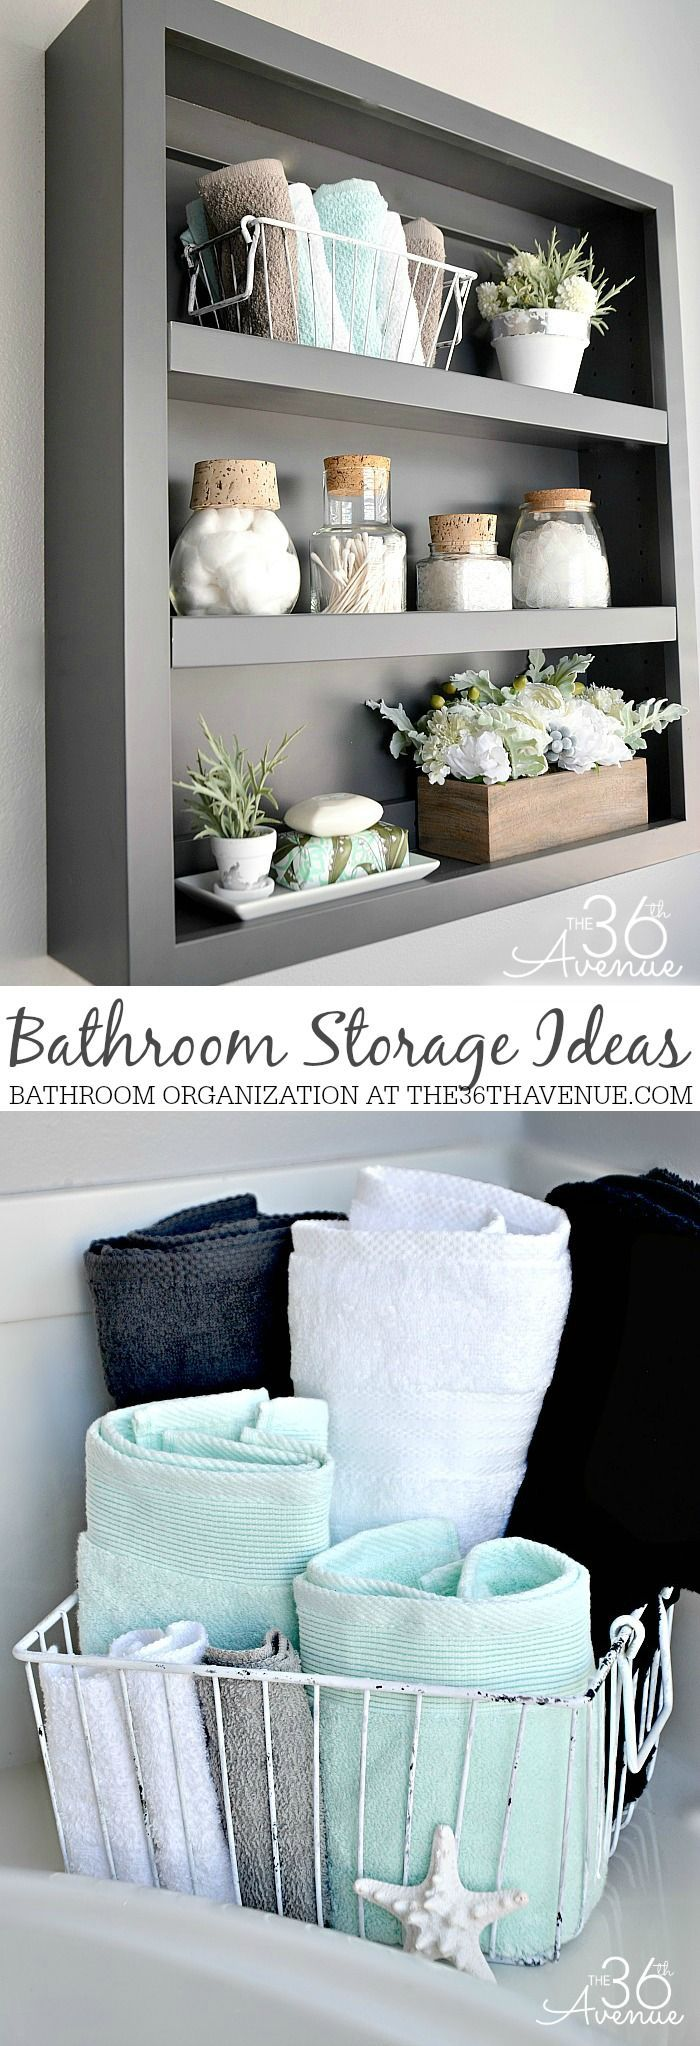 Bathroom wall cabinets ideas - Bathroom Storage And Organization Ideas At The36thavenue Com Cleaning Bathroom